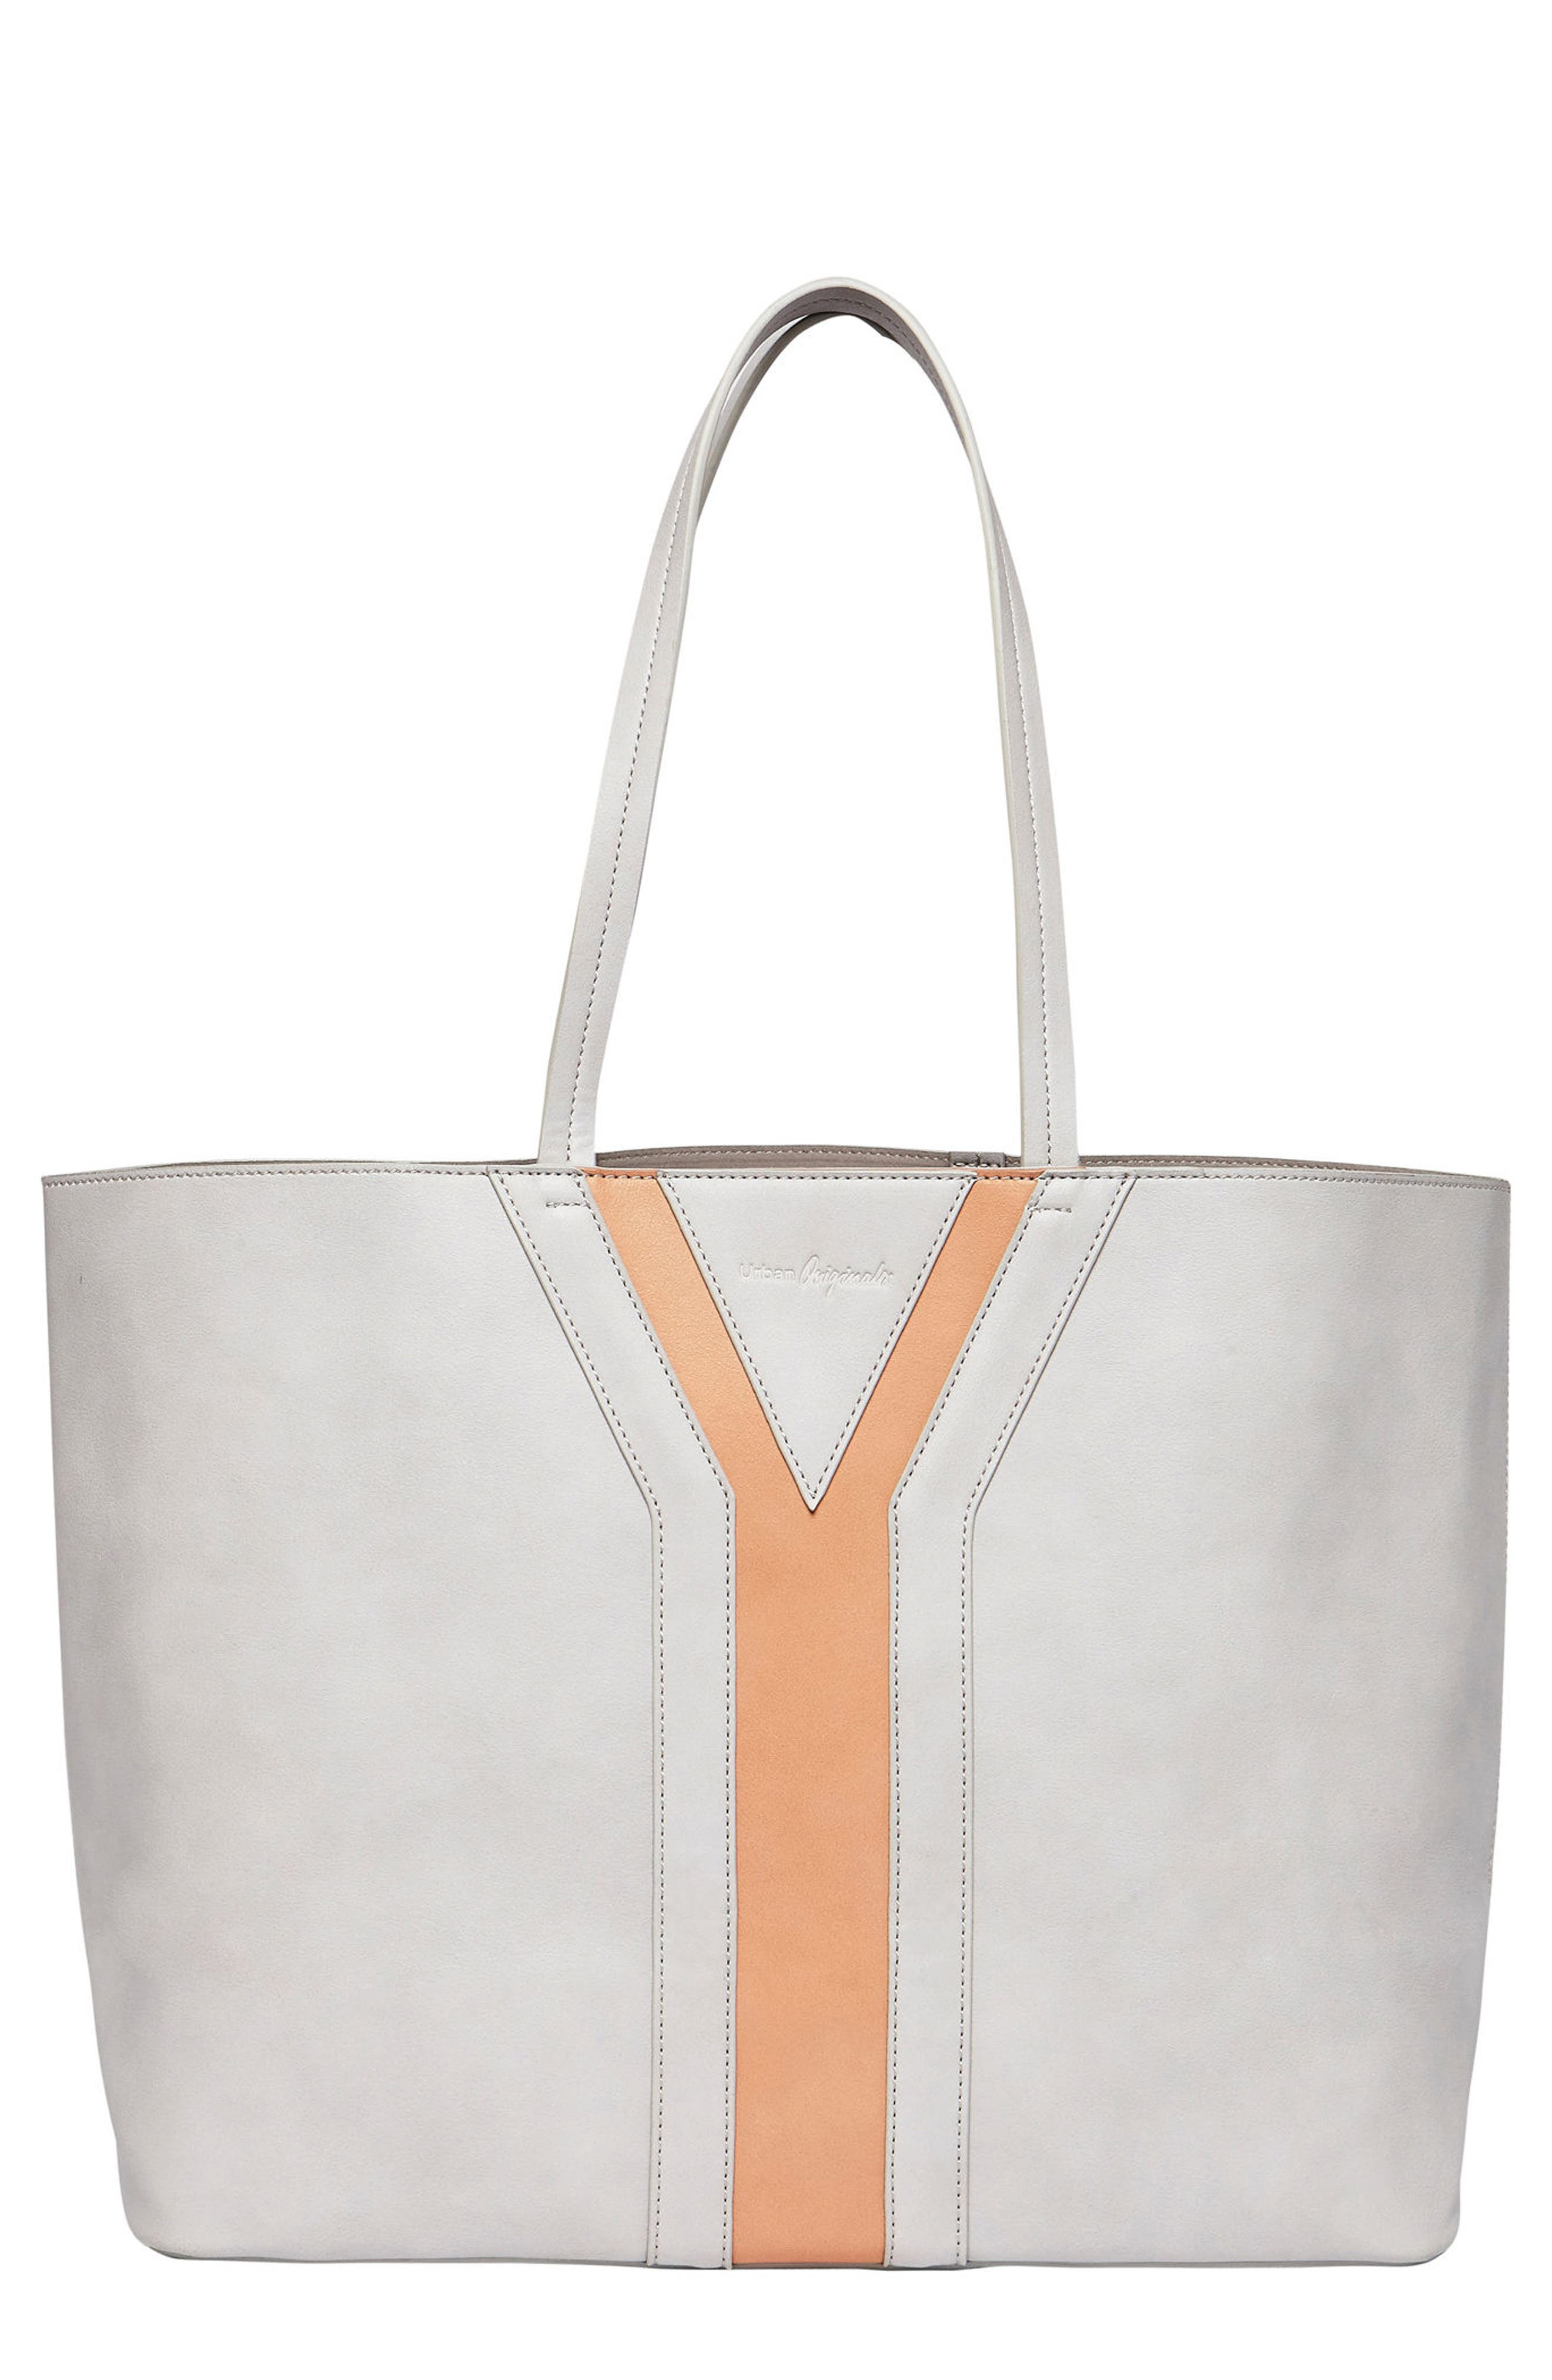 Streetstyle Vegan Leather Tote,                         Main,                         color, Grey/ Pink